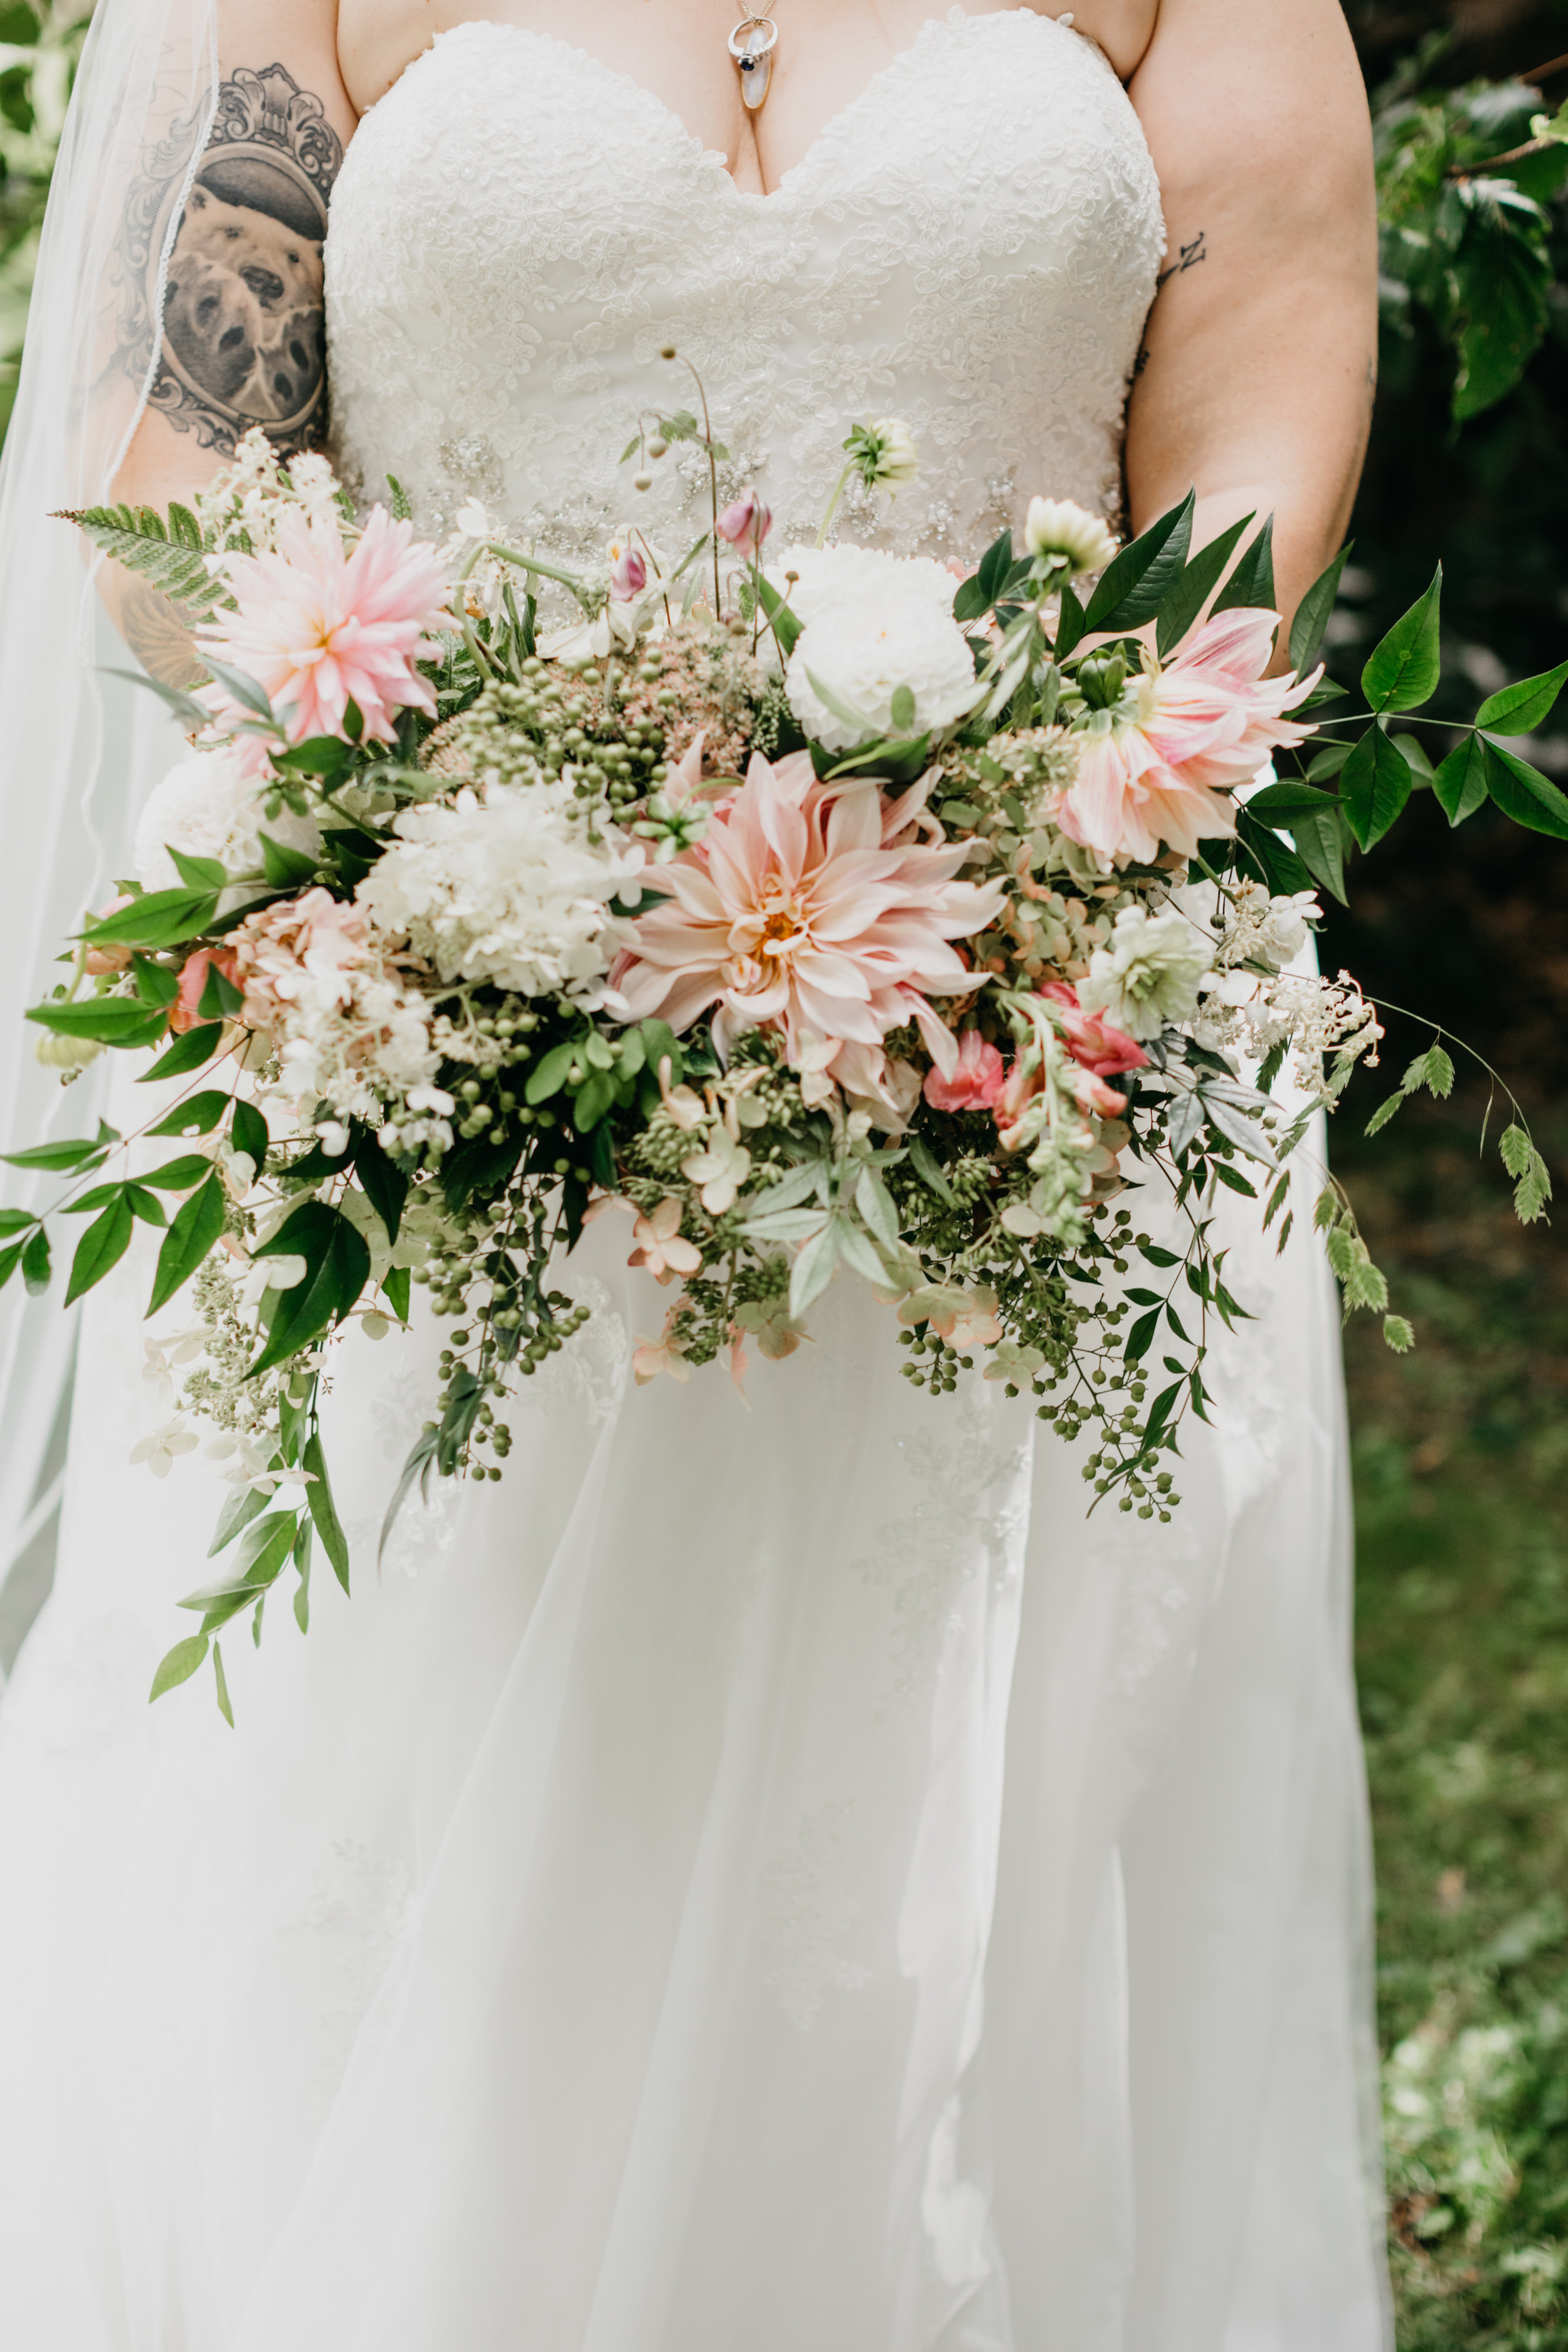 Montgomery county Pennsylvania backyard wedding at bride's family home with Heart & Dash wedding planning